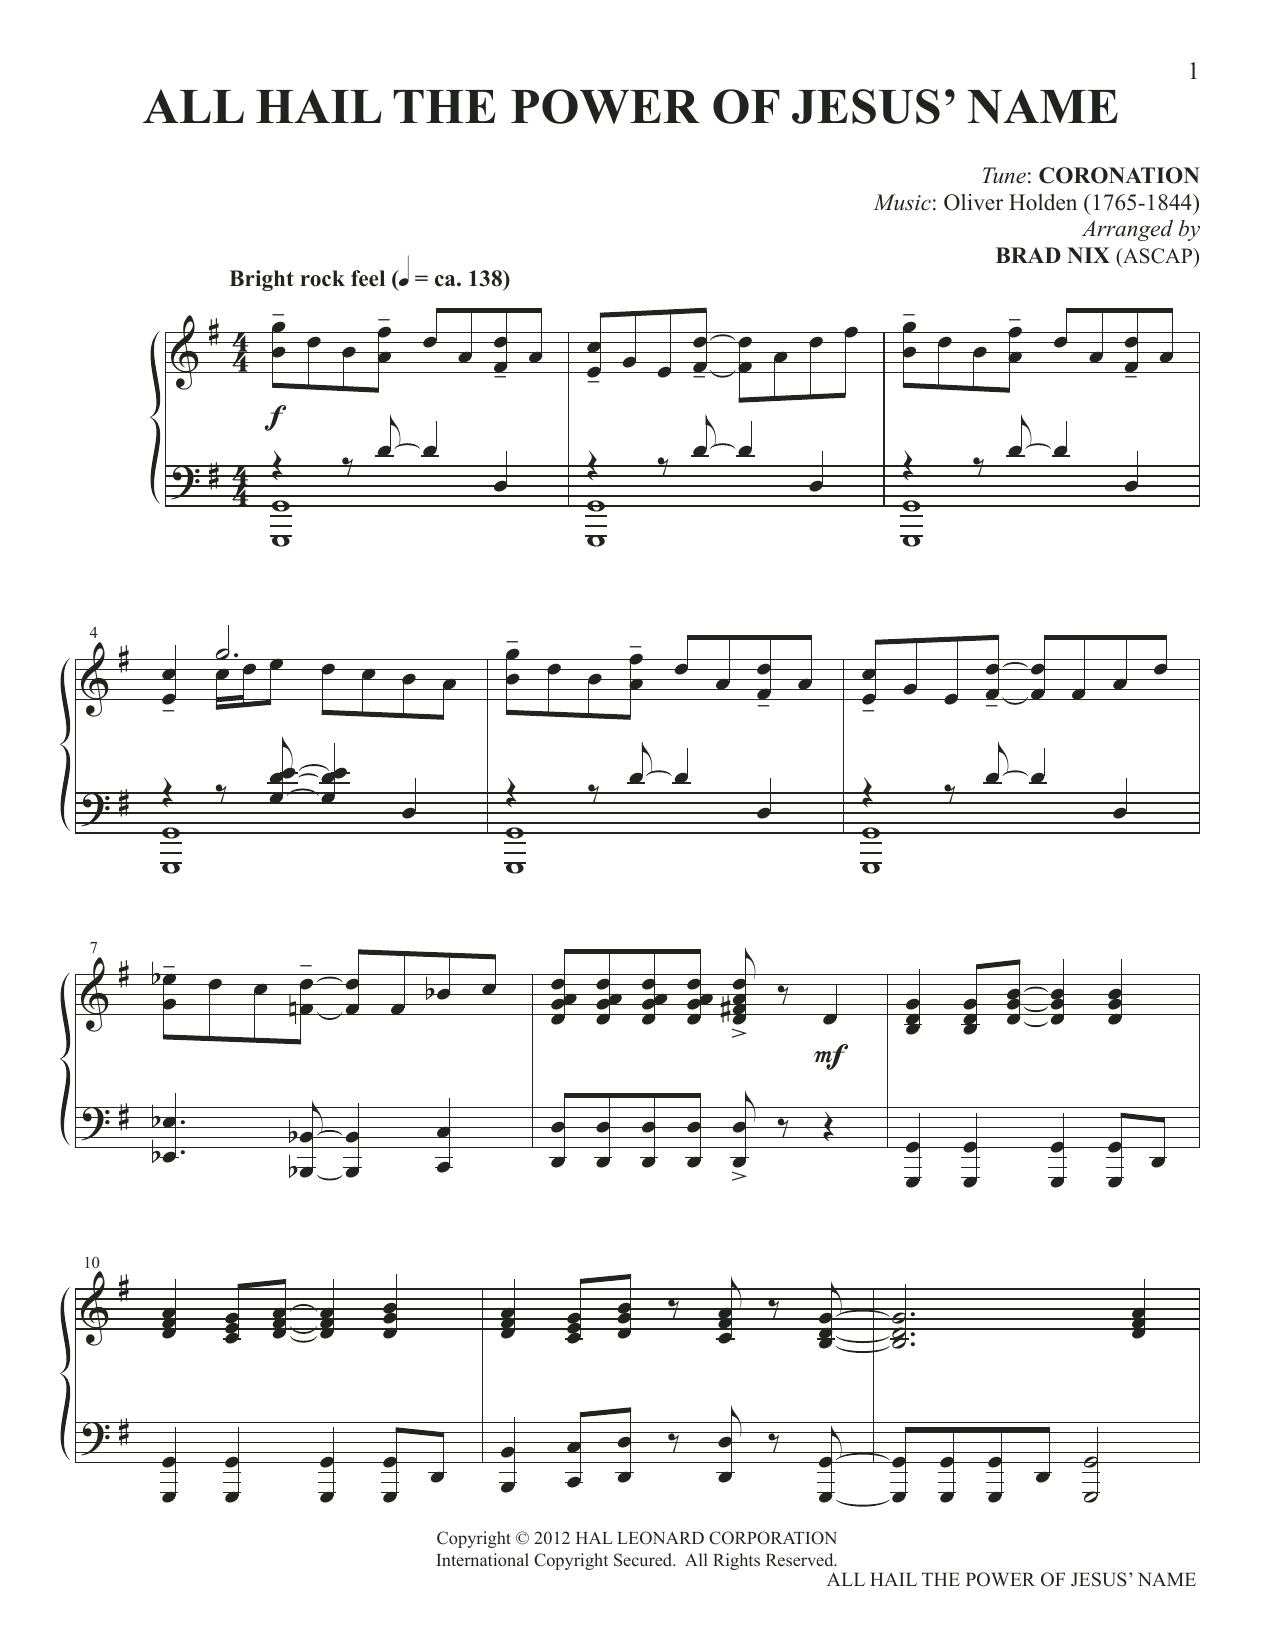 All Hail The Power Of Jesus' Name (arr. Brad Nix) (Piano Solo)